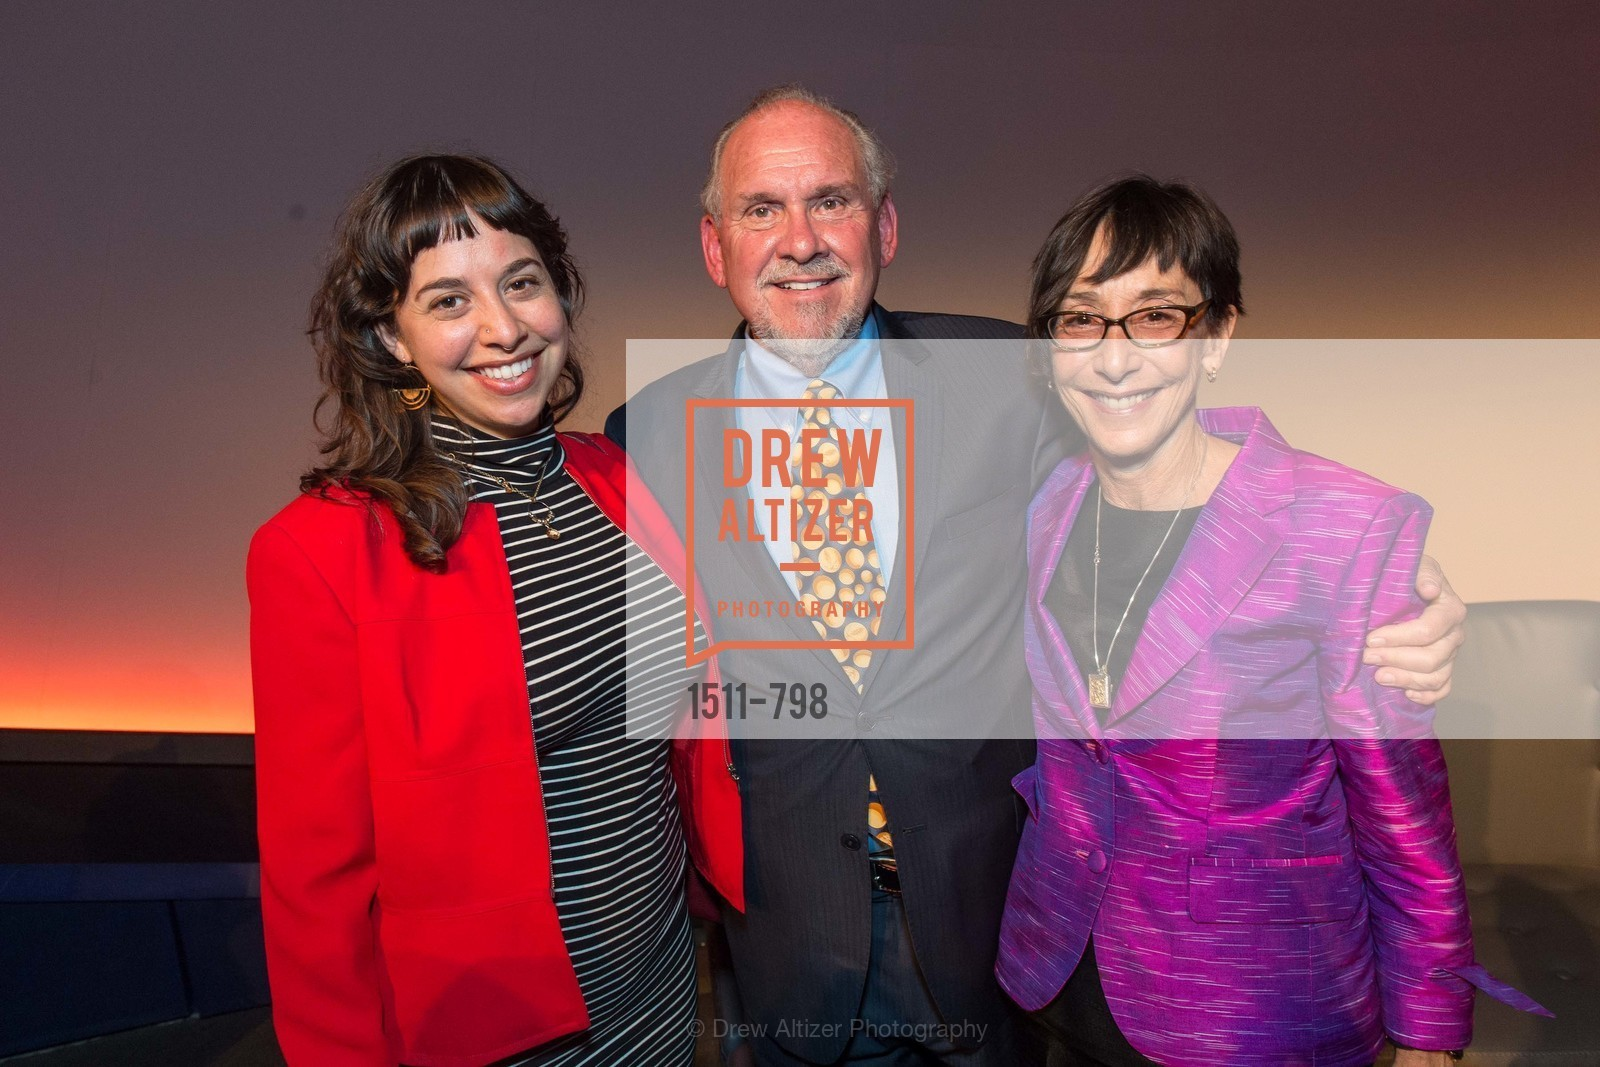 Iris Brilliant, Larry Brilliant, Girija Brilliant, CALIFORNIA ACADEMY OF SCIENCES - Big Bang Gala 2015, US, April 23rd, 2015,Drew Altizer, Drew Altizer Photography, full-service agency, private events, San Francisco photographer, photographer california